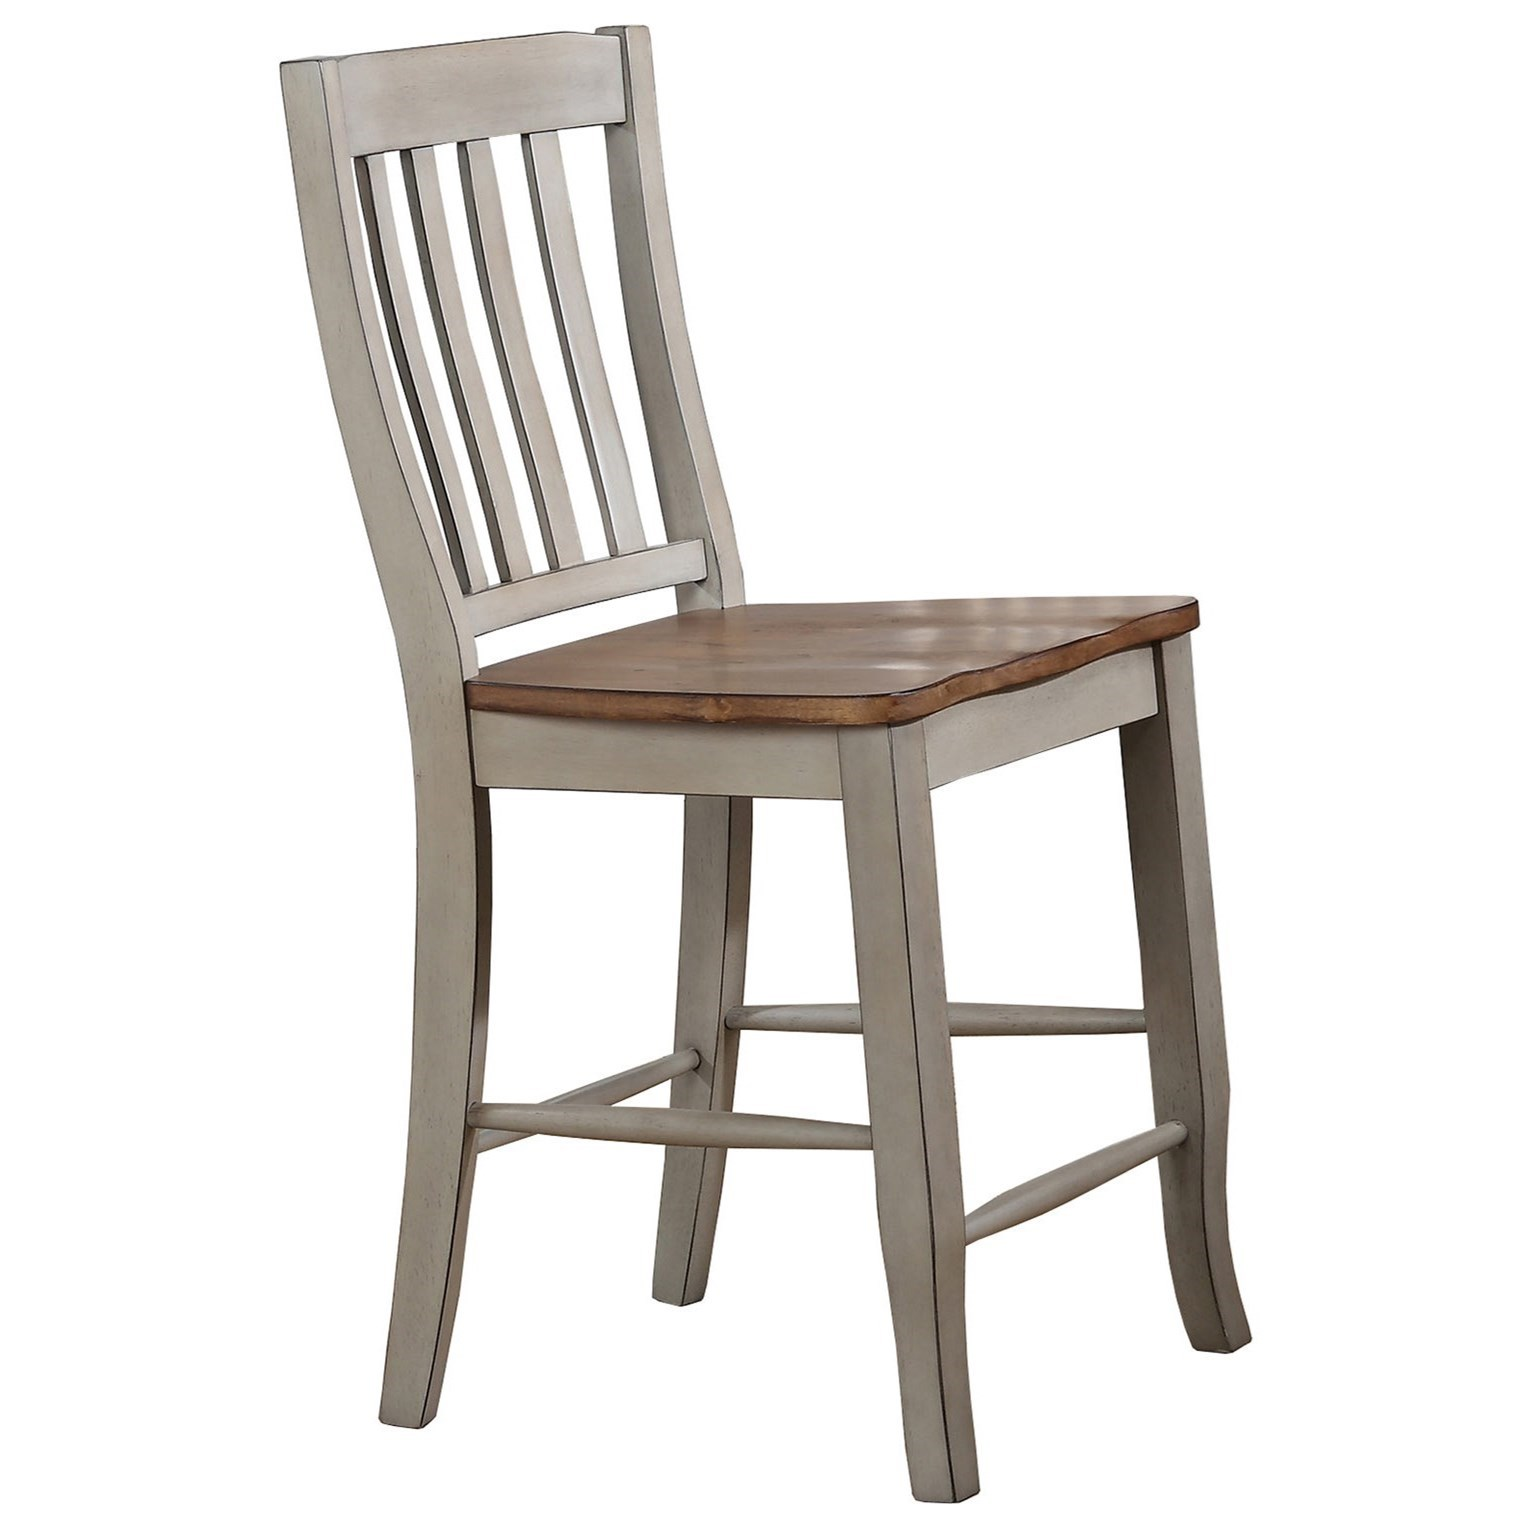 counter height chairs with back pier one chair pads brayden grey rake stool rotmans bar stools